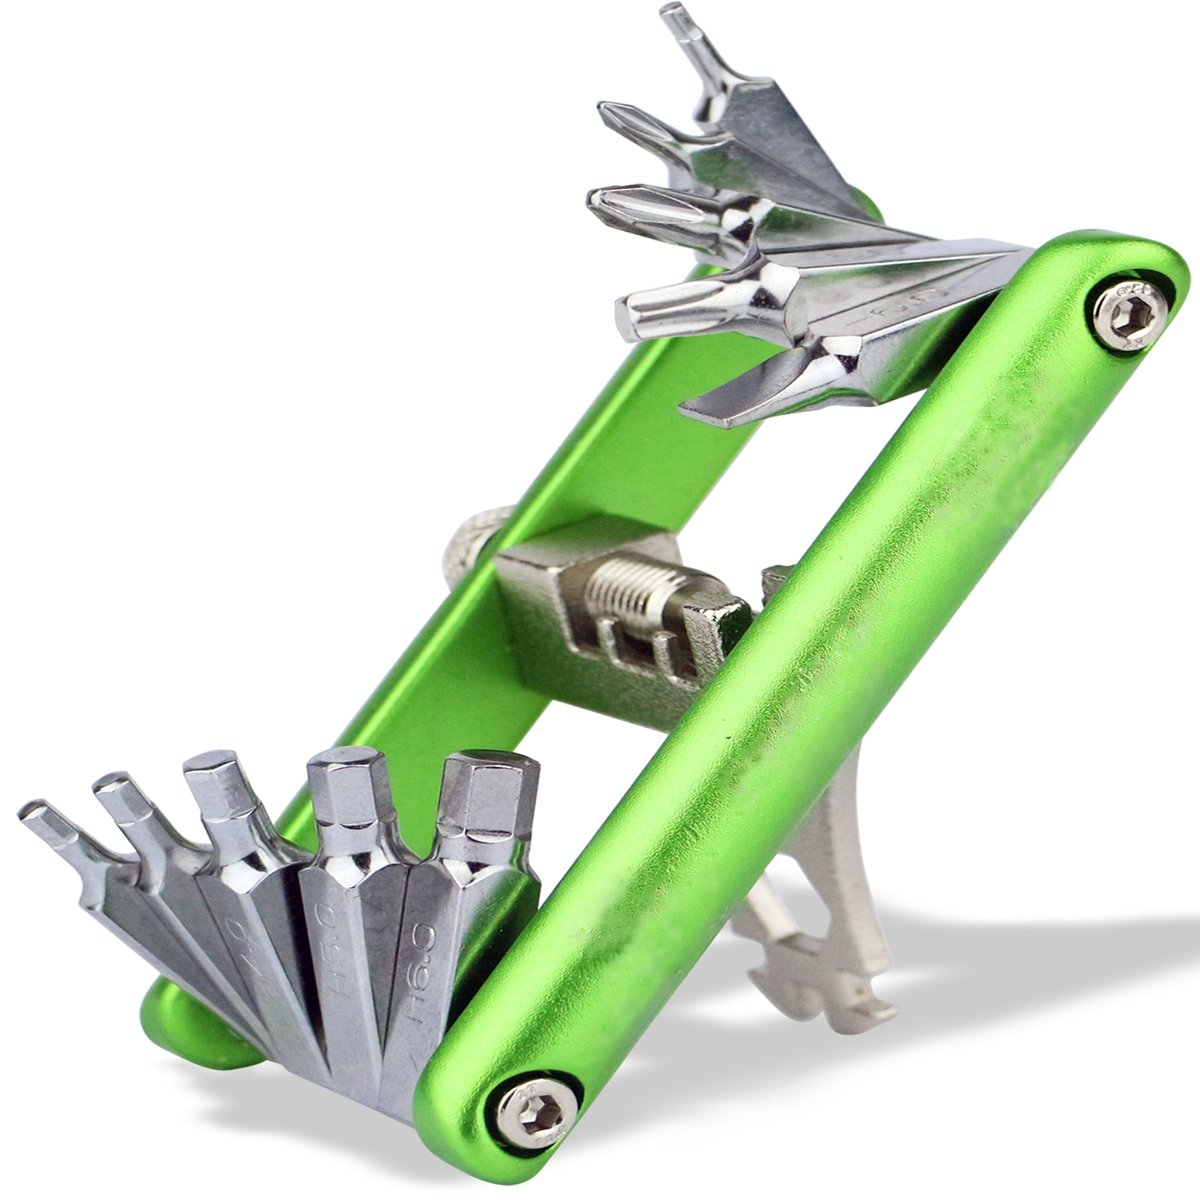 H5 Bike Tools 16 in 1 Multifunction Bicycle Maintenance Multitool with Sheath for Common Road and Trail-side Repairs